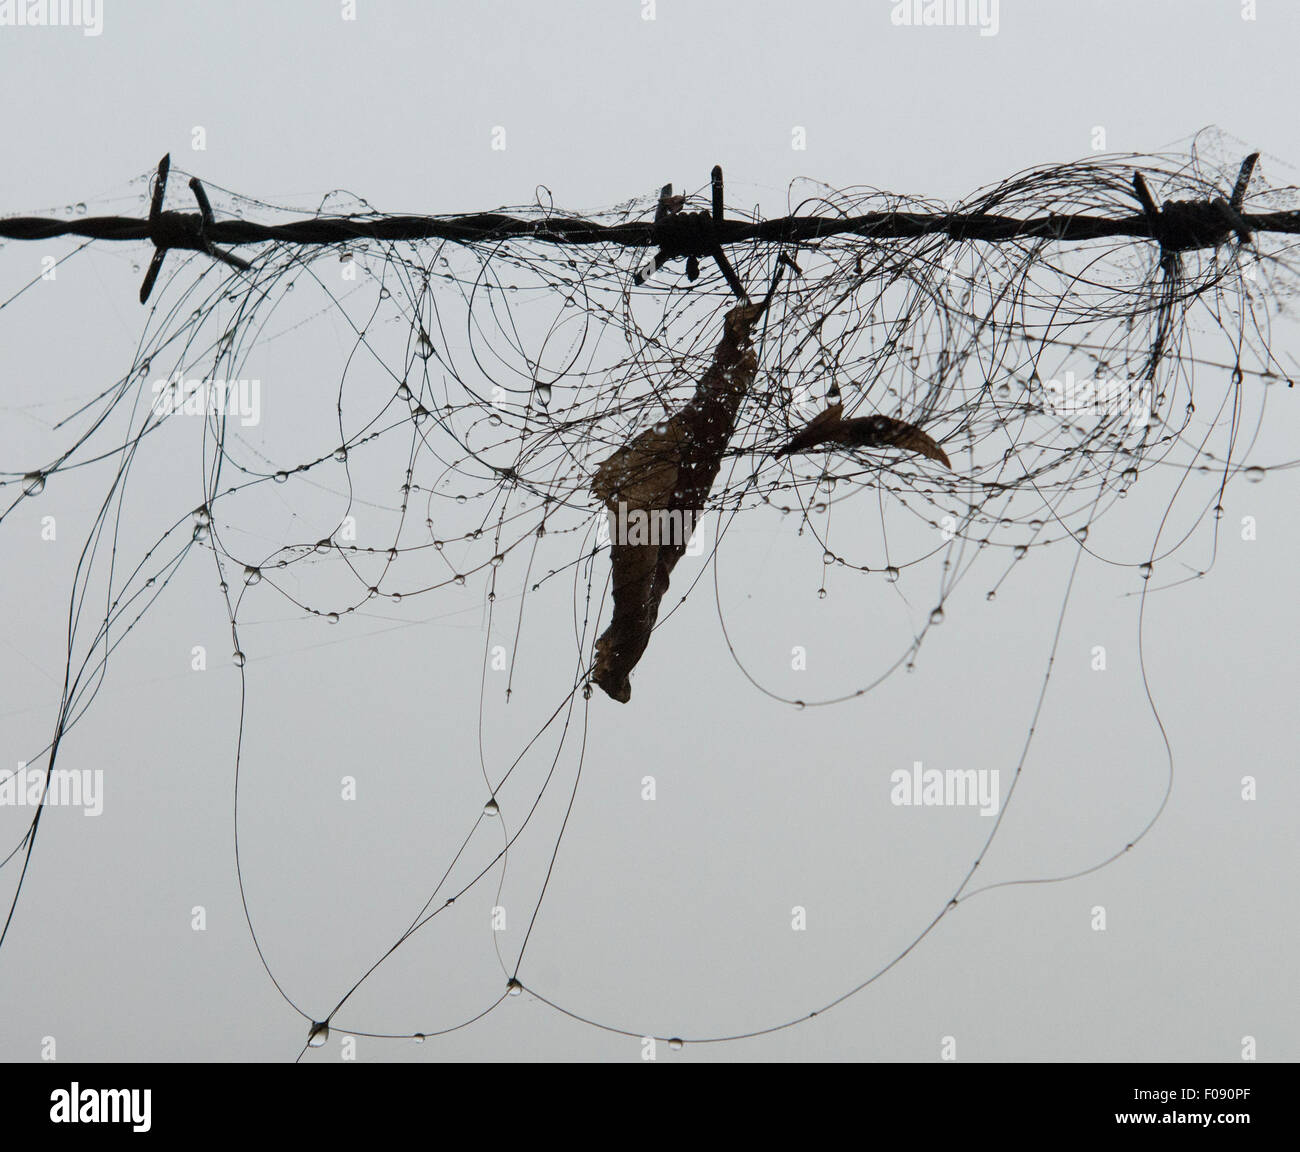 Horse hair caught on barbed wire Stock Photo: 86250039 - Alamy